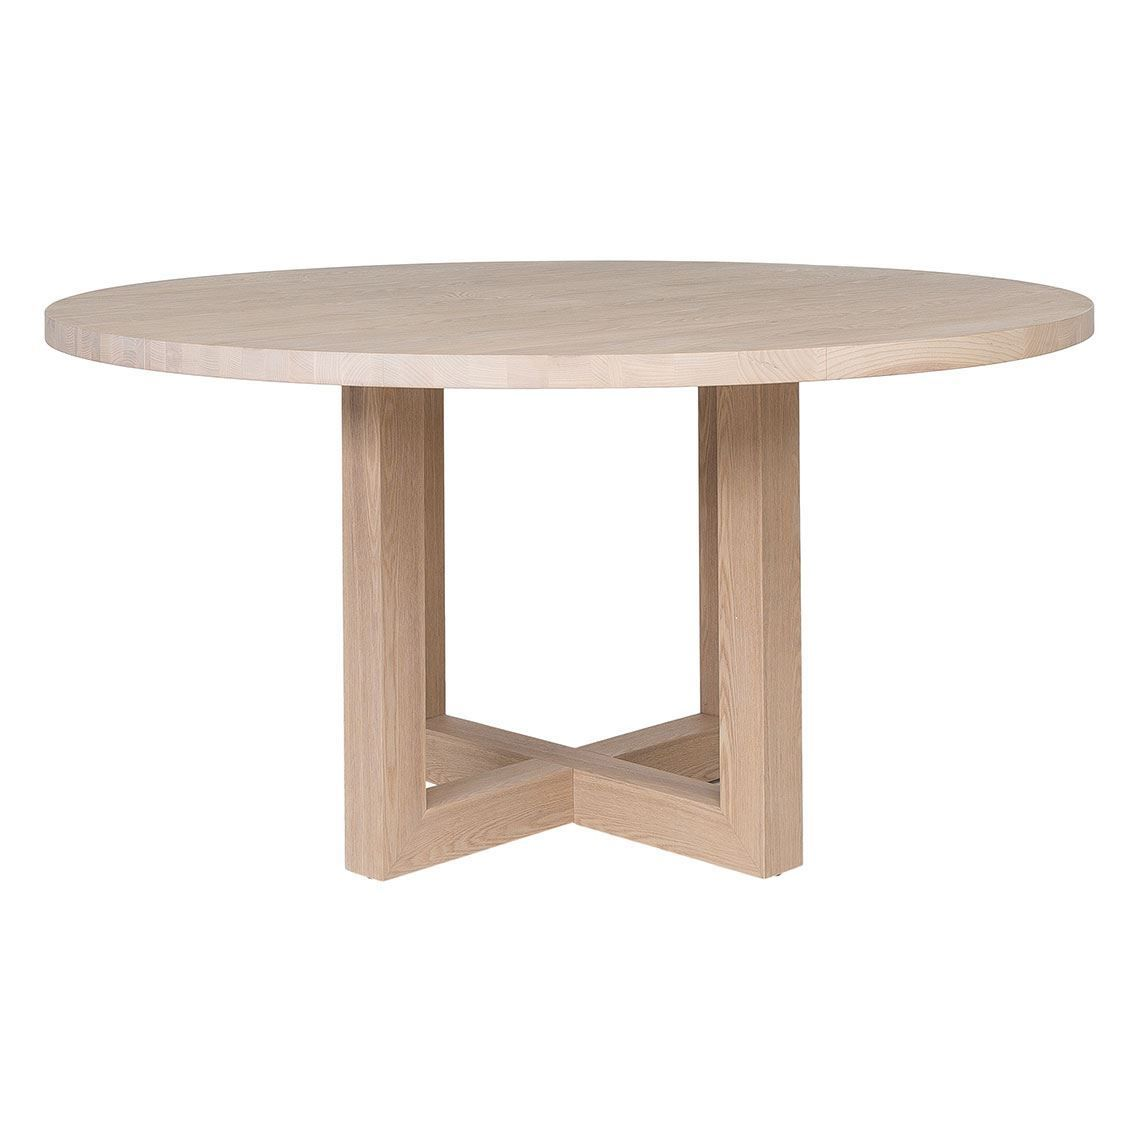 Cove Round Dining Table Size W 150cm X D 150cm X H 76cm In Natural